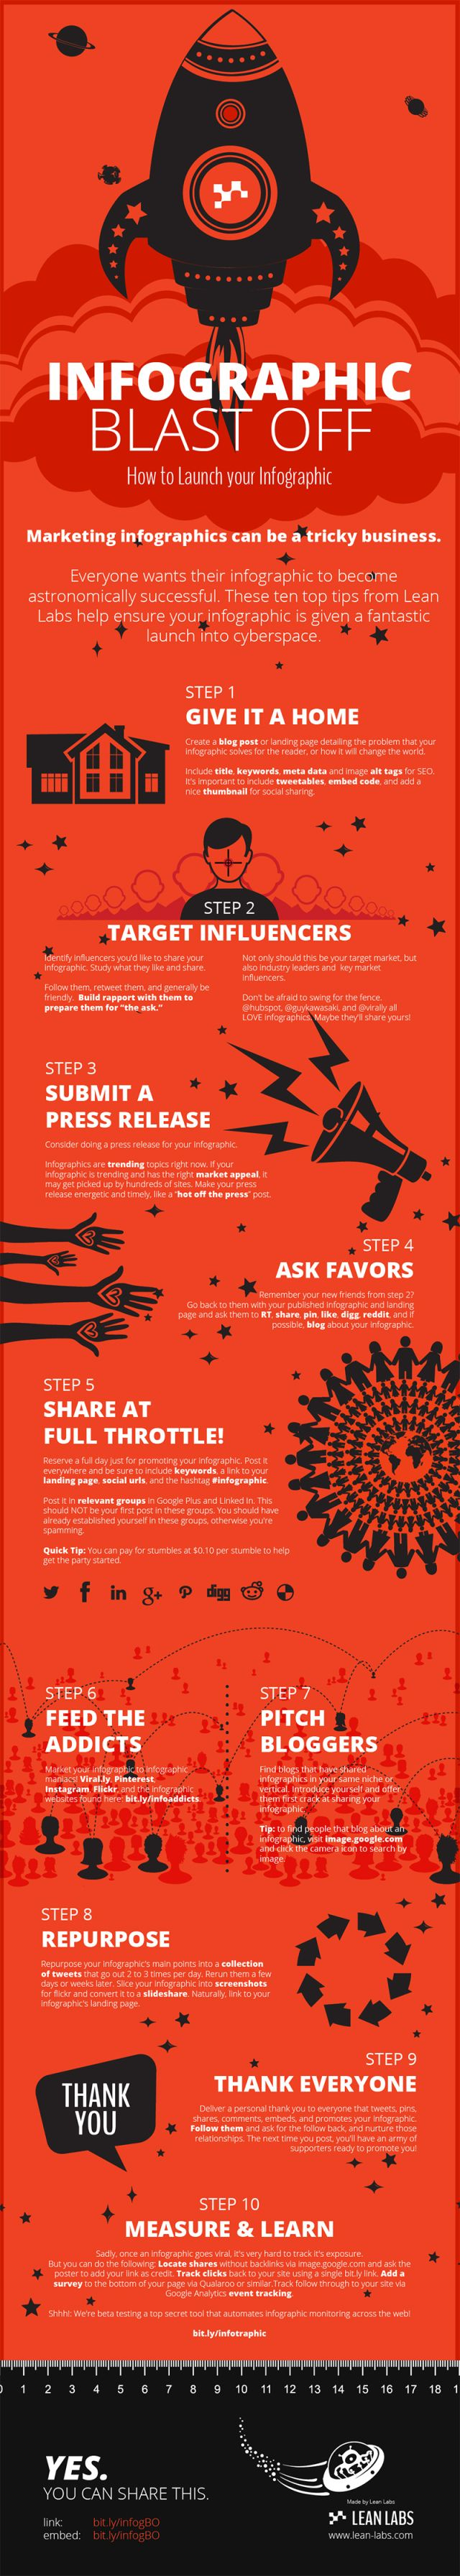 Infographics Marketing - 10 steps to get your infographic noticed on social media